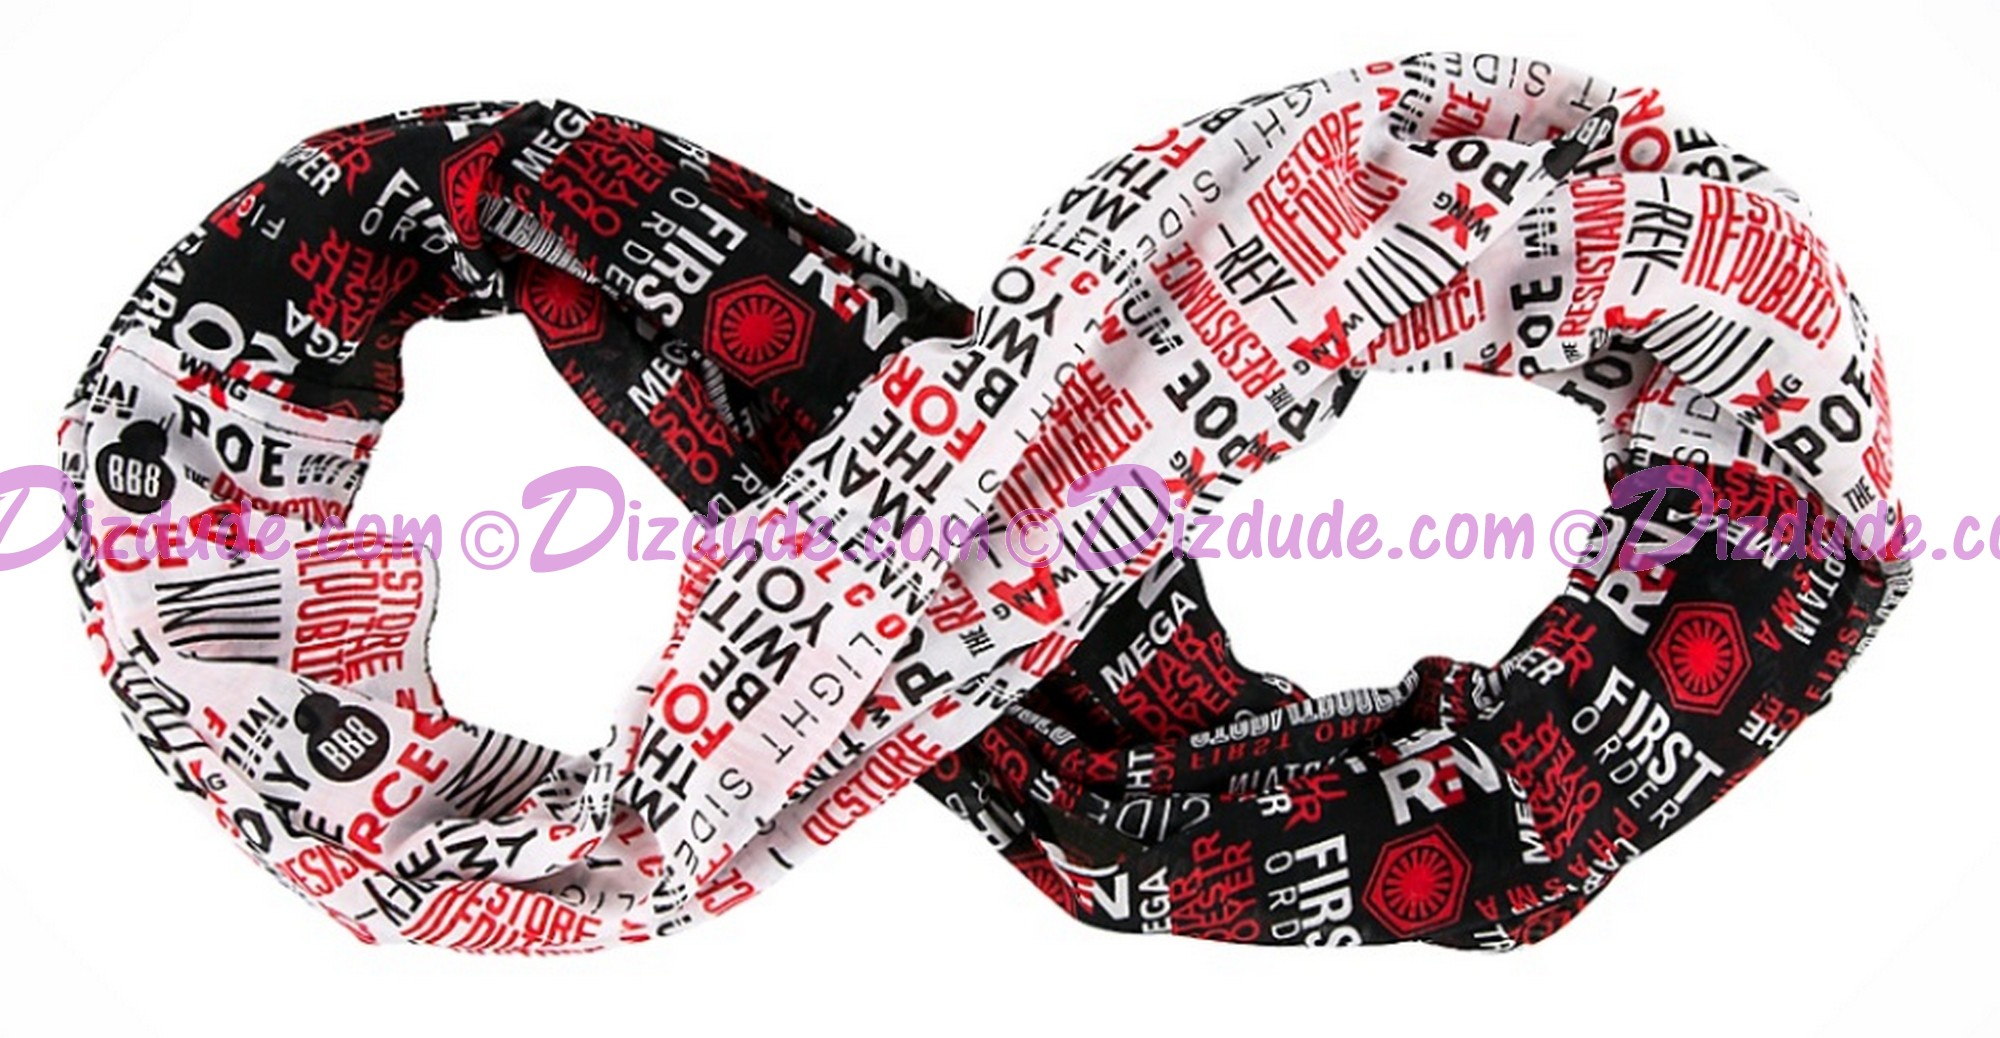 Dark Side/ Light Side Infinity Scarf ~ Disney Star Wars Episode VIII: The Last Jedi © Dizdude.com